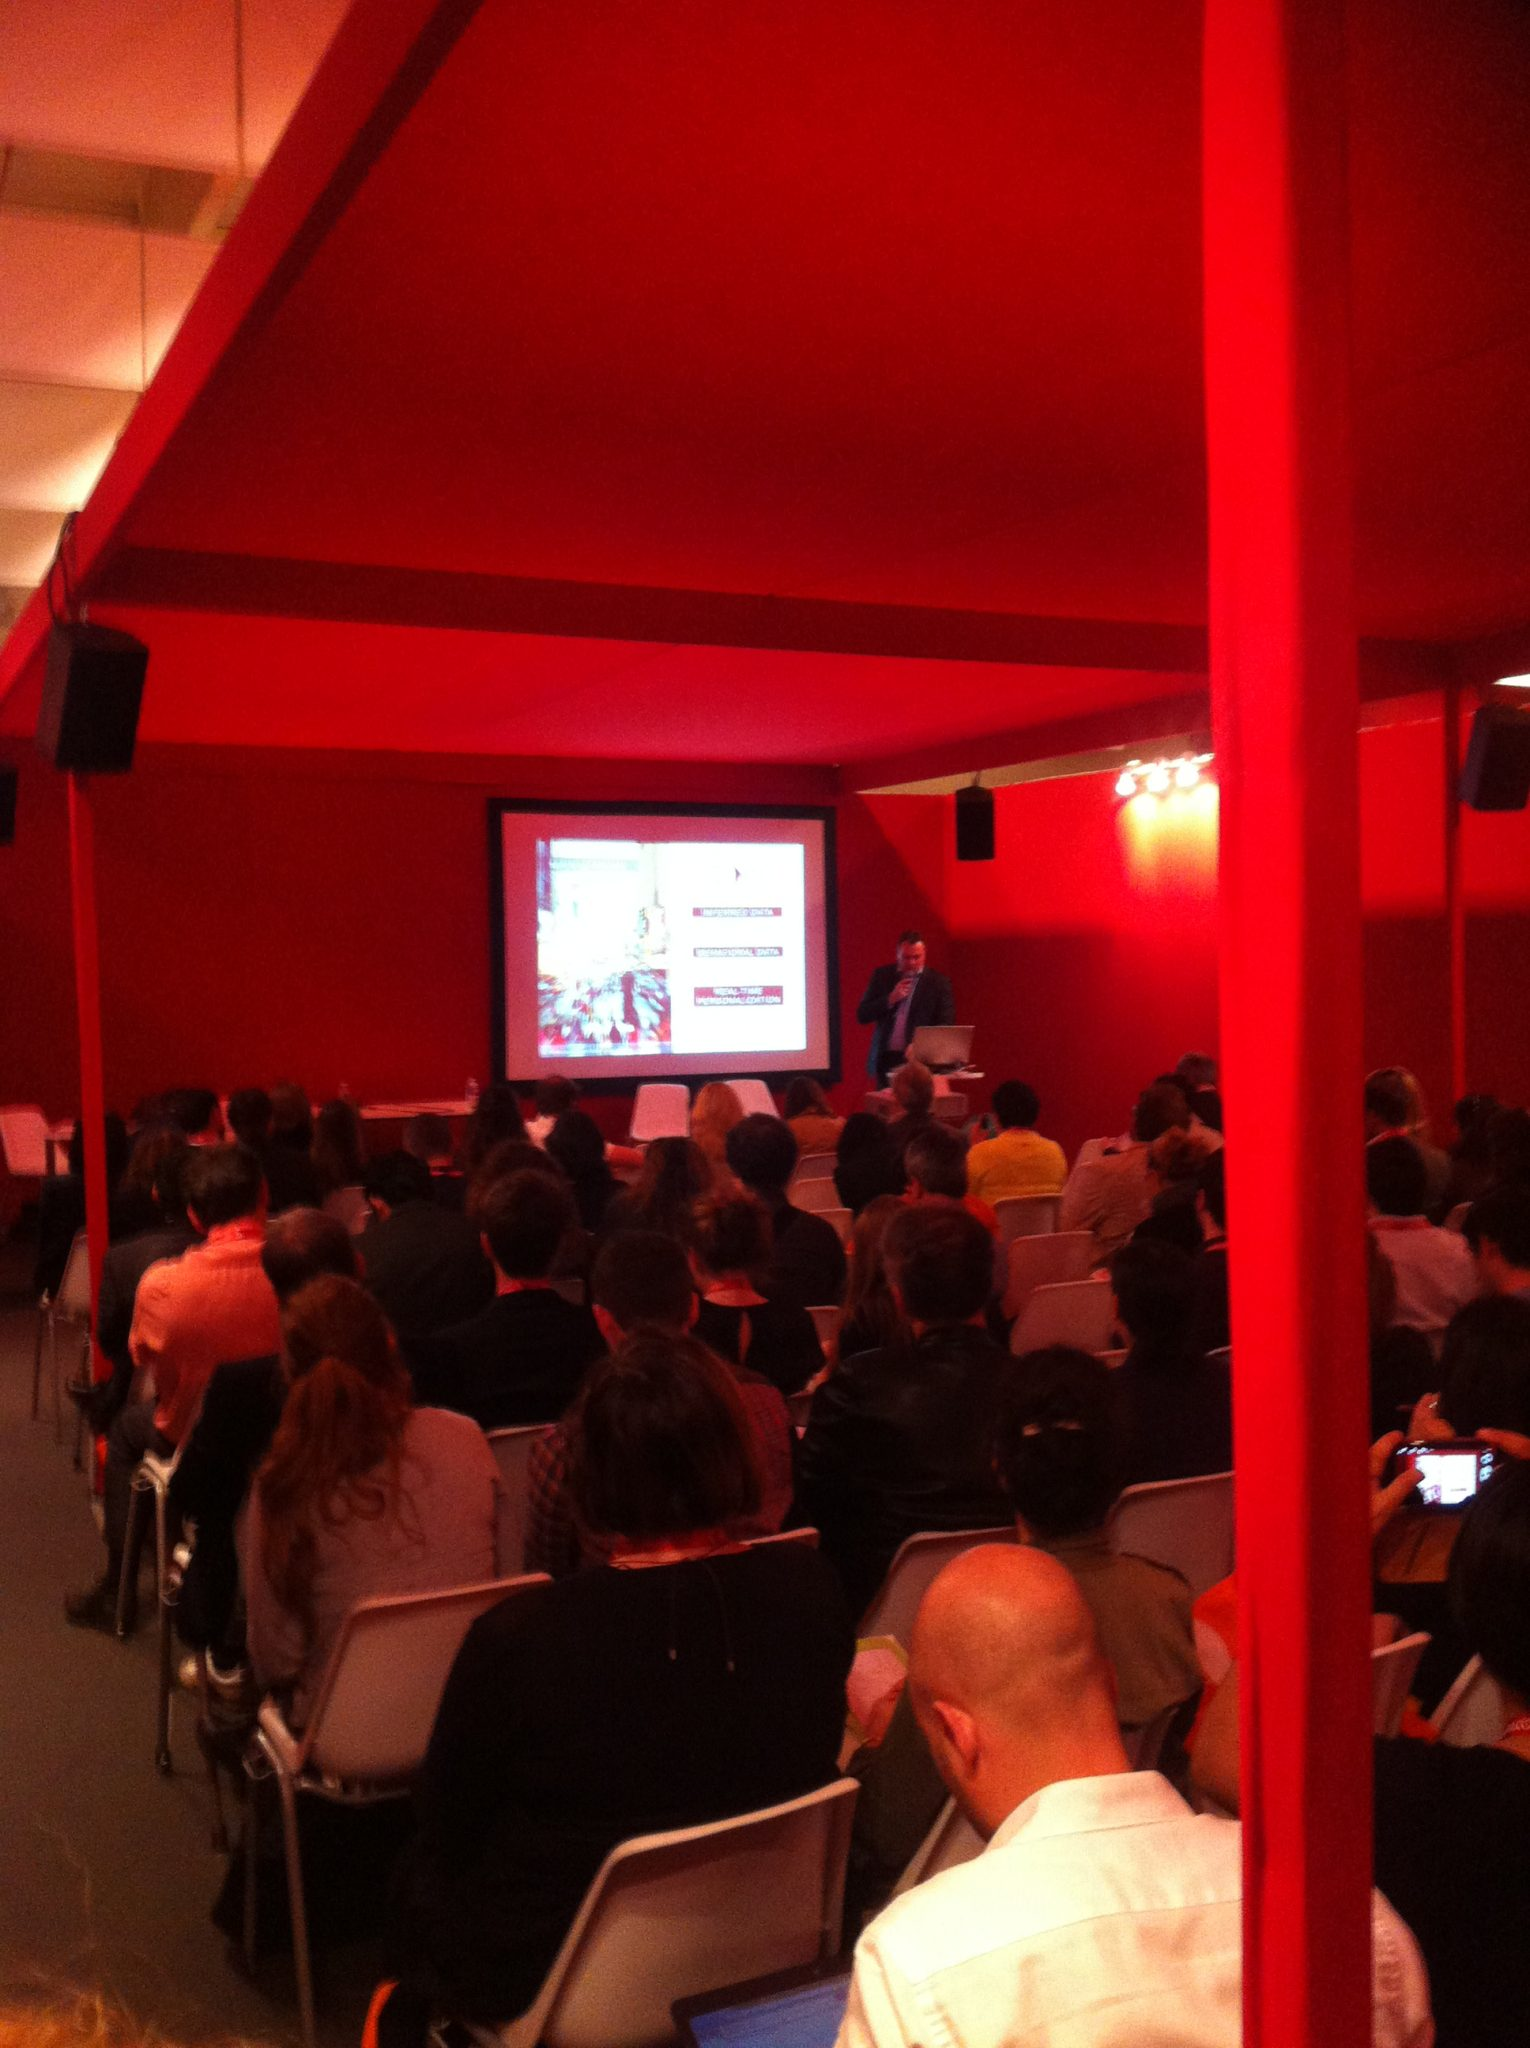 Suntseu pr sent au salon emarketing paris 2015 - Salon emarketing paris ...